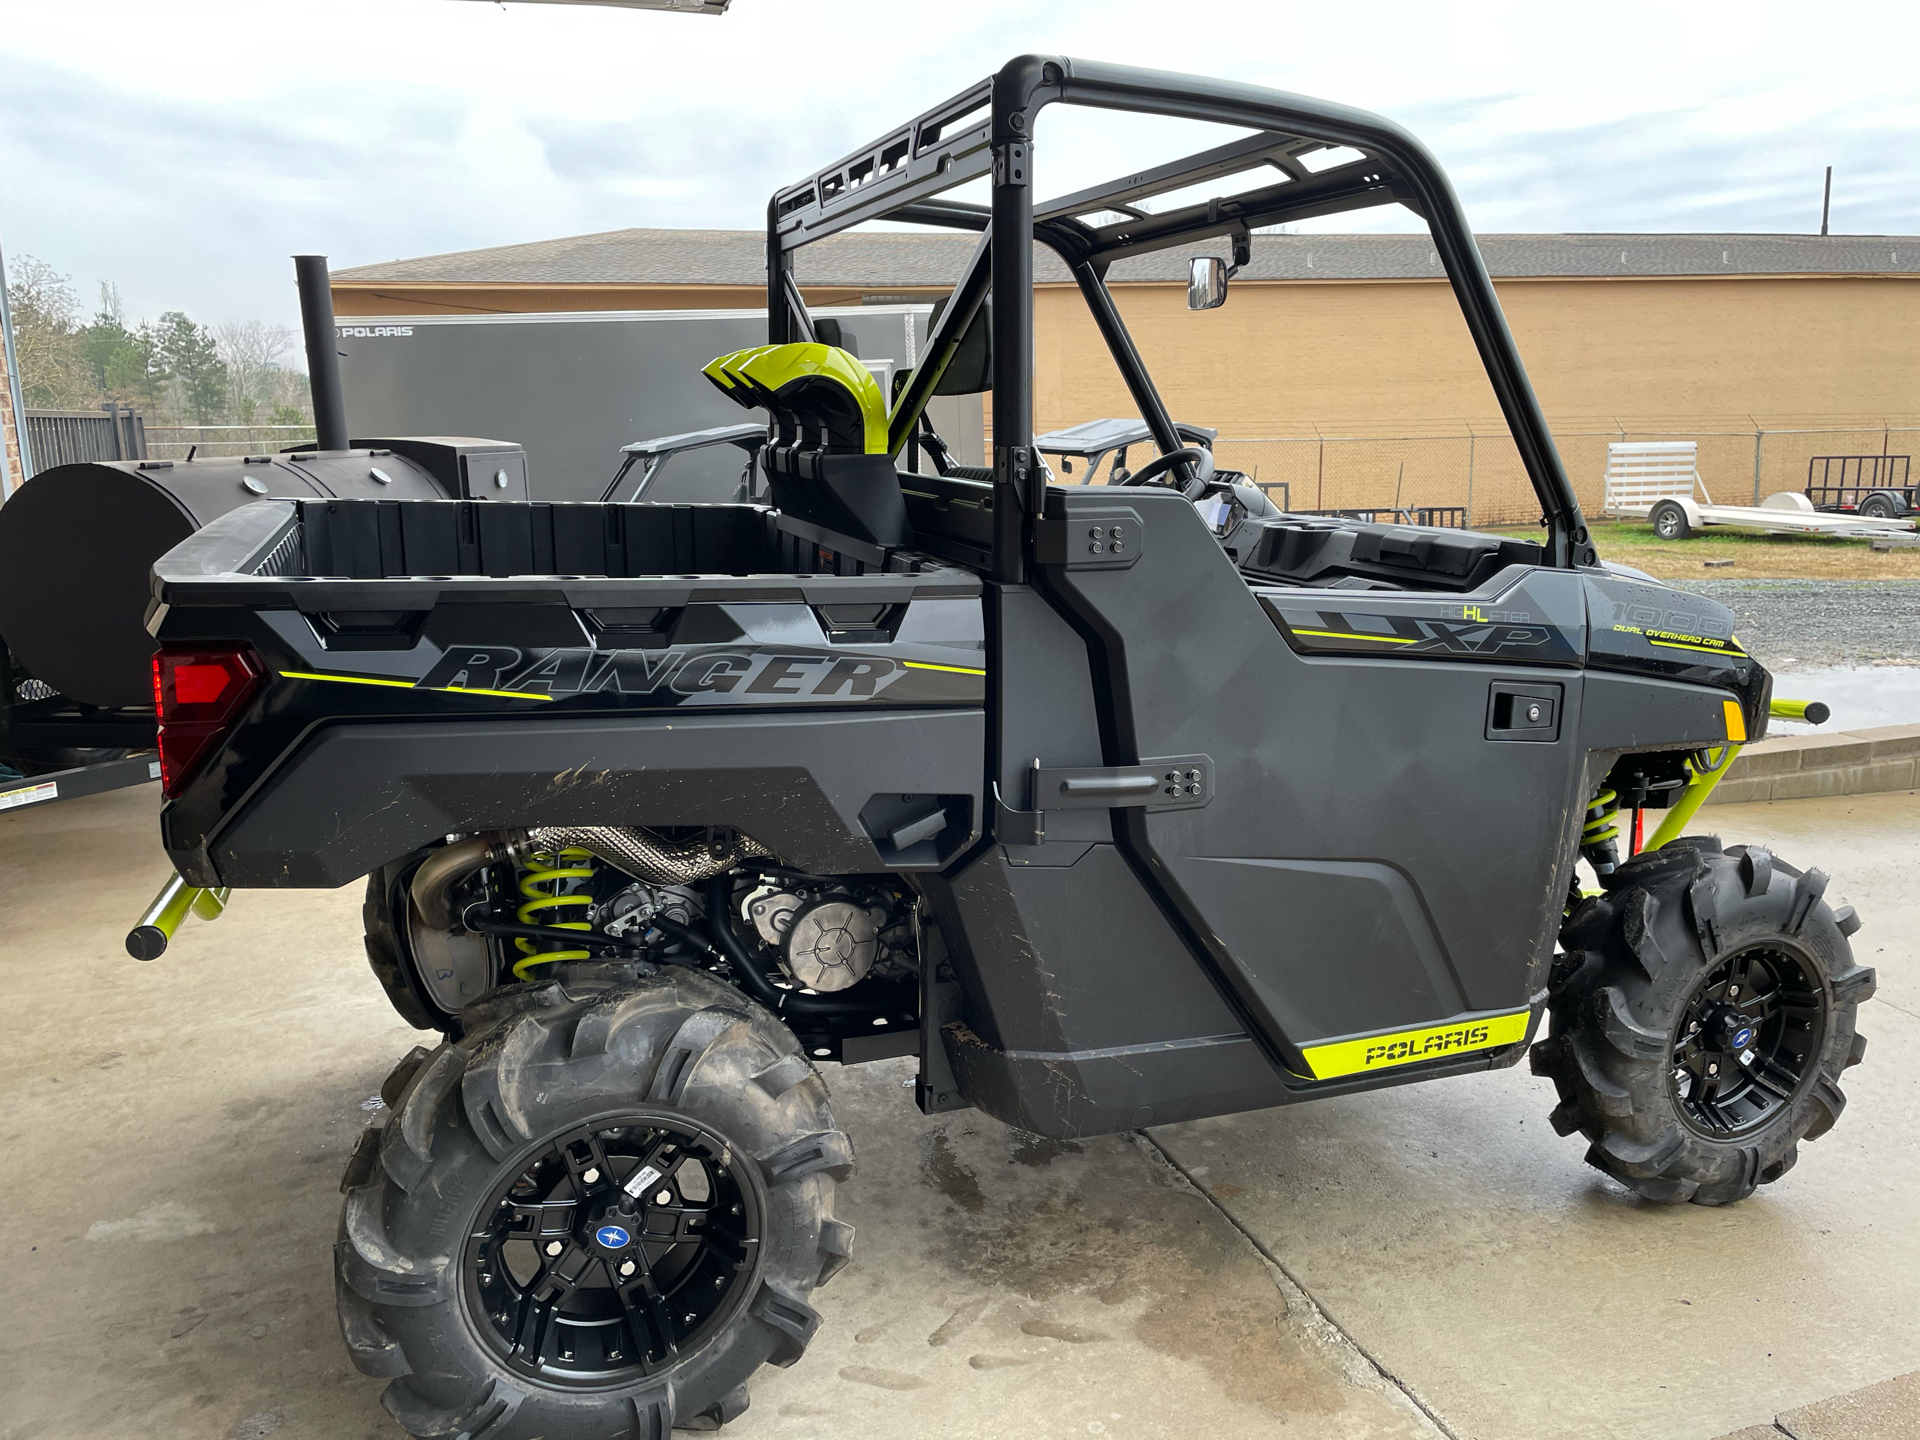 2020 Polaris Ranger XP 1000 High Lifter Edition in Marshall, Texas - Photo 9